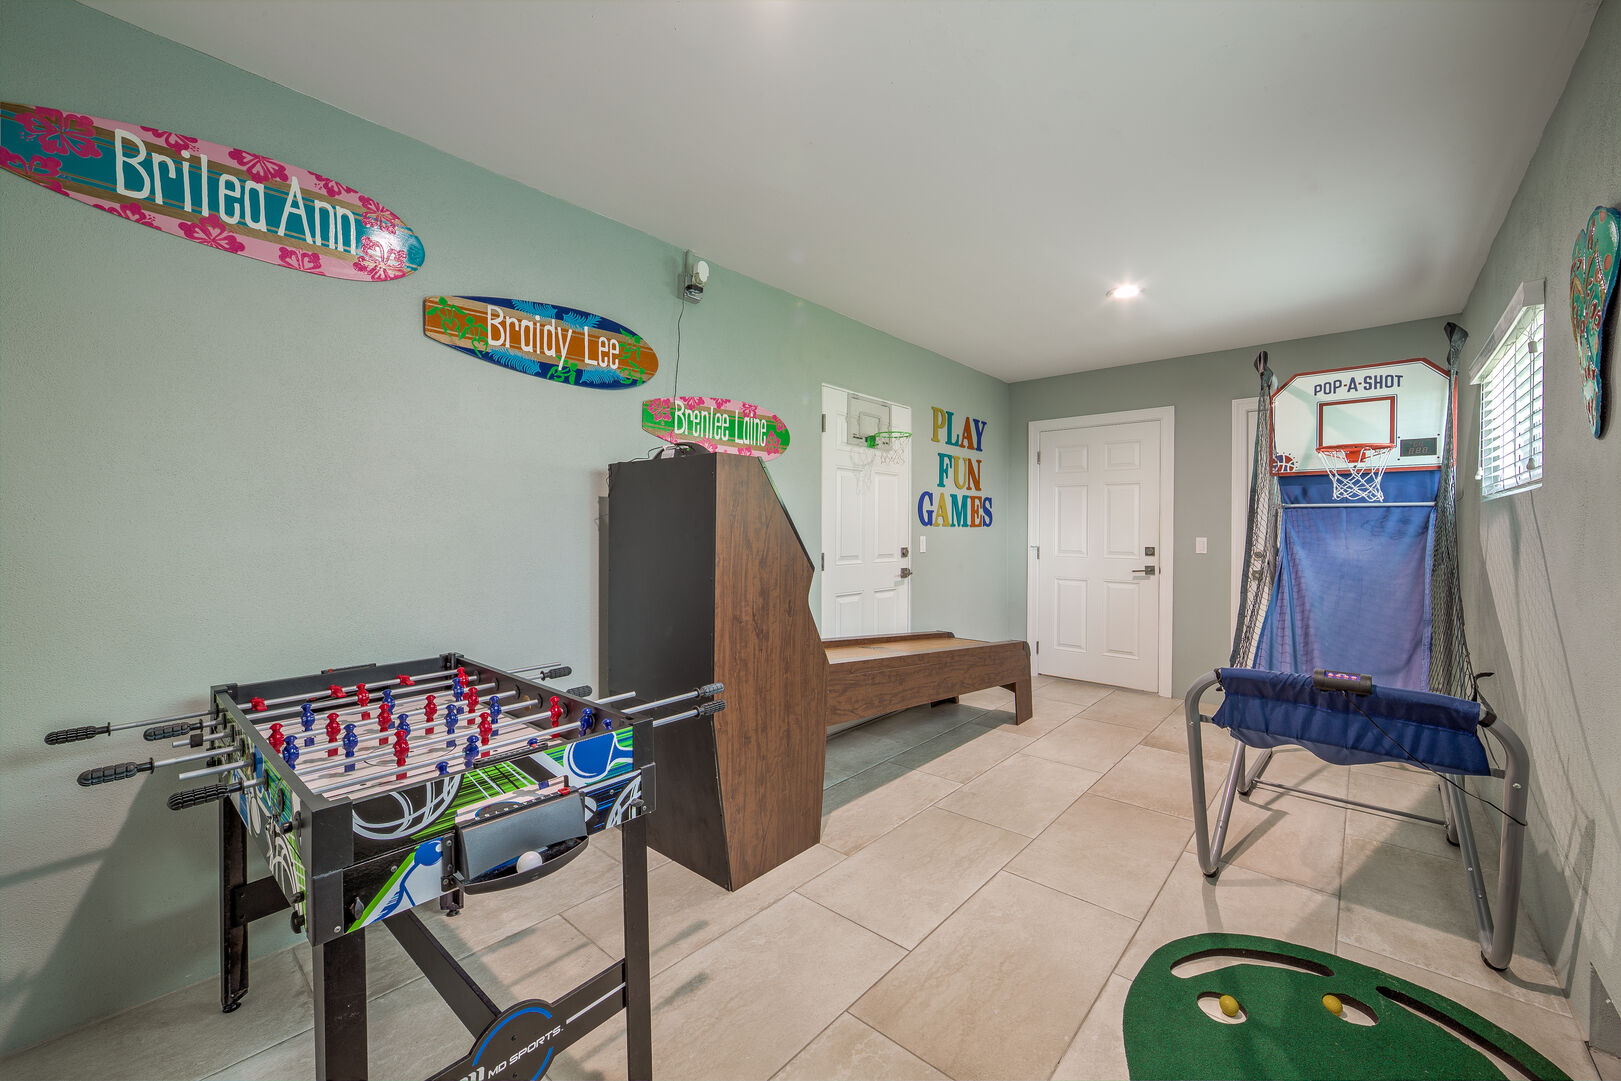 Another view of the game room that shows the foosball table, skeeball table, and basketball hoop.